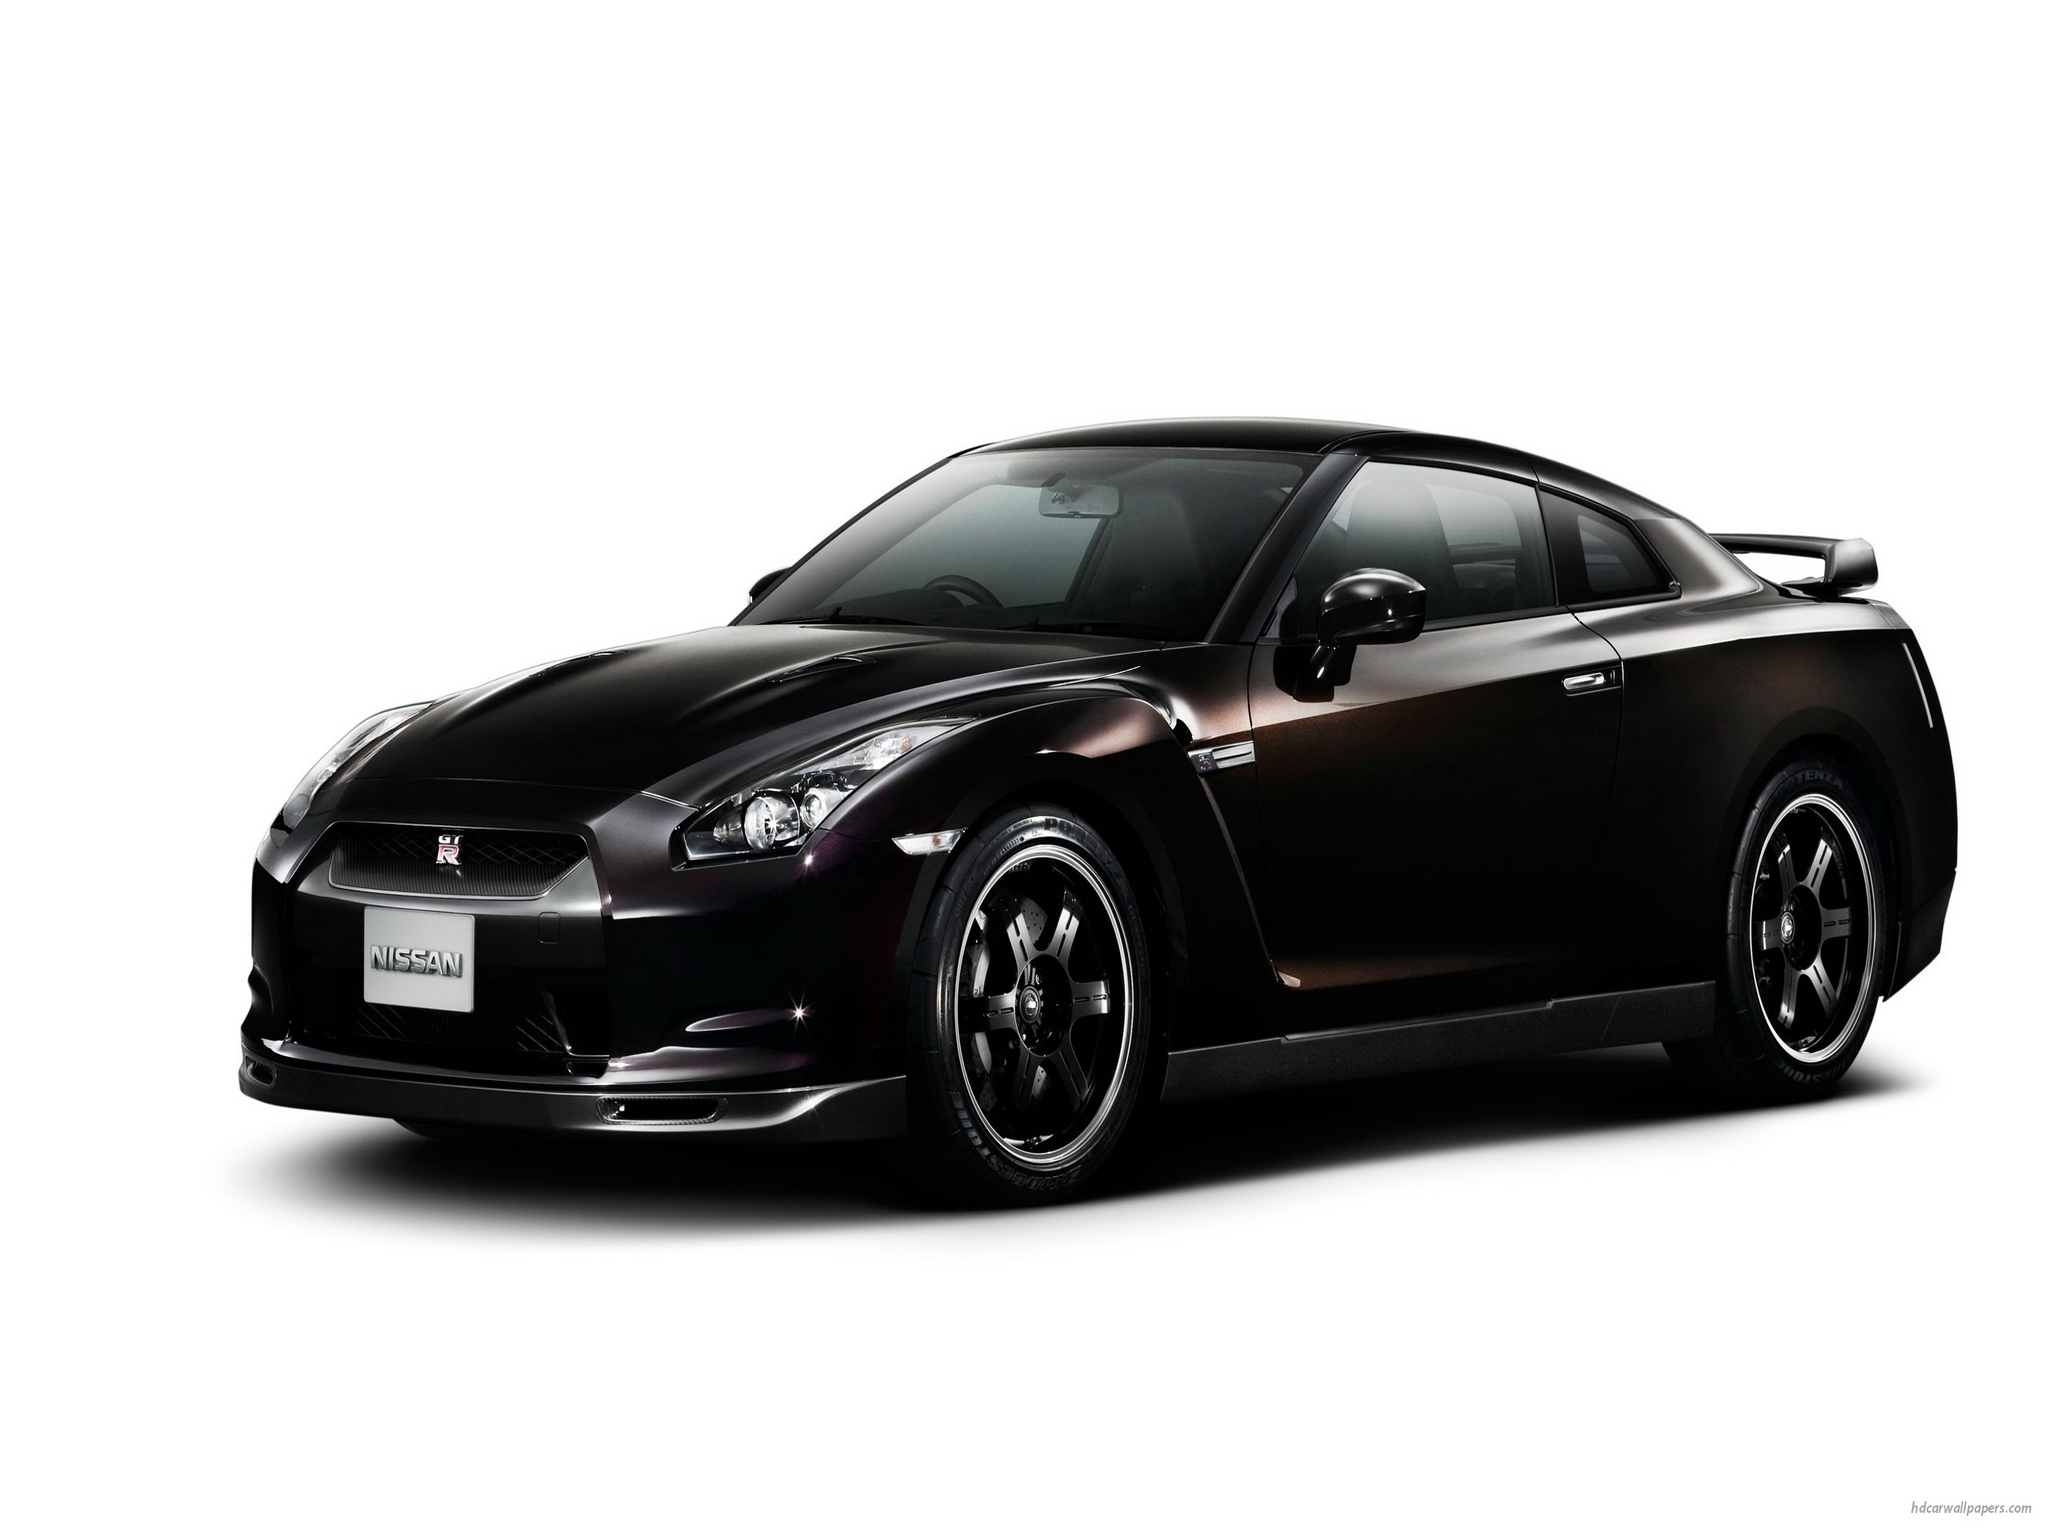 nissan gt r specv 2 iPad 3 Wallpapers New iPad 3 Background 2048x1536